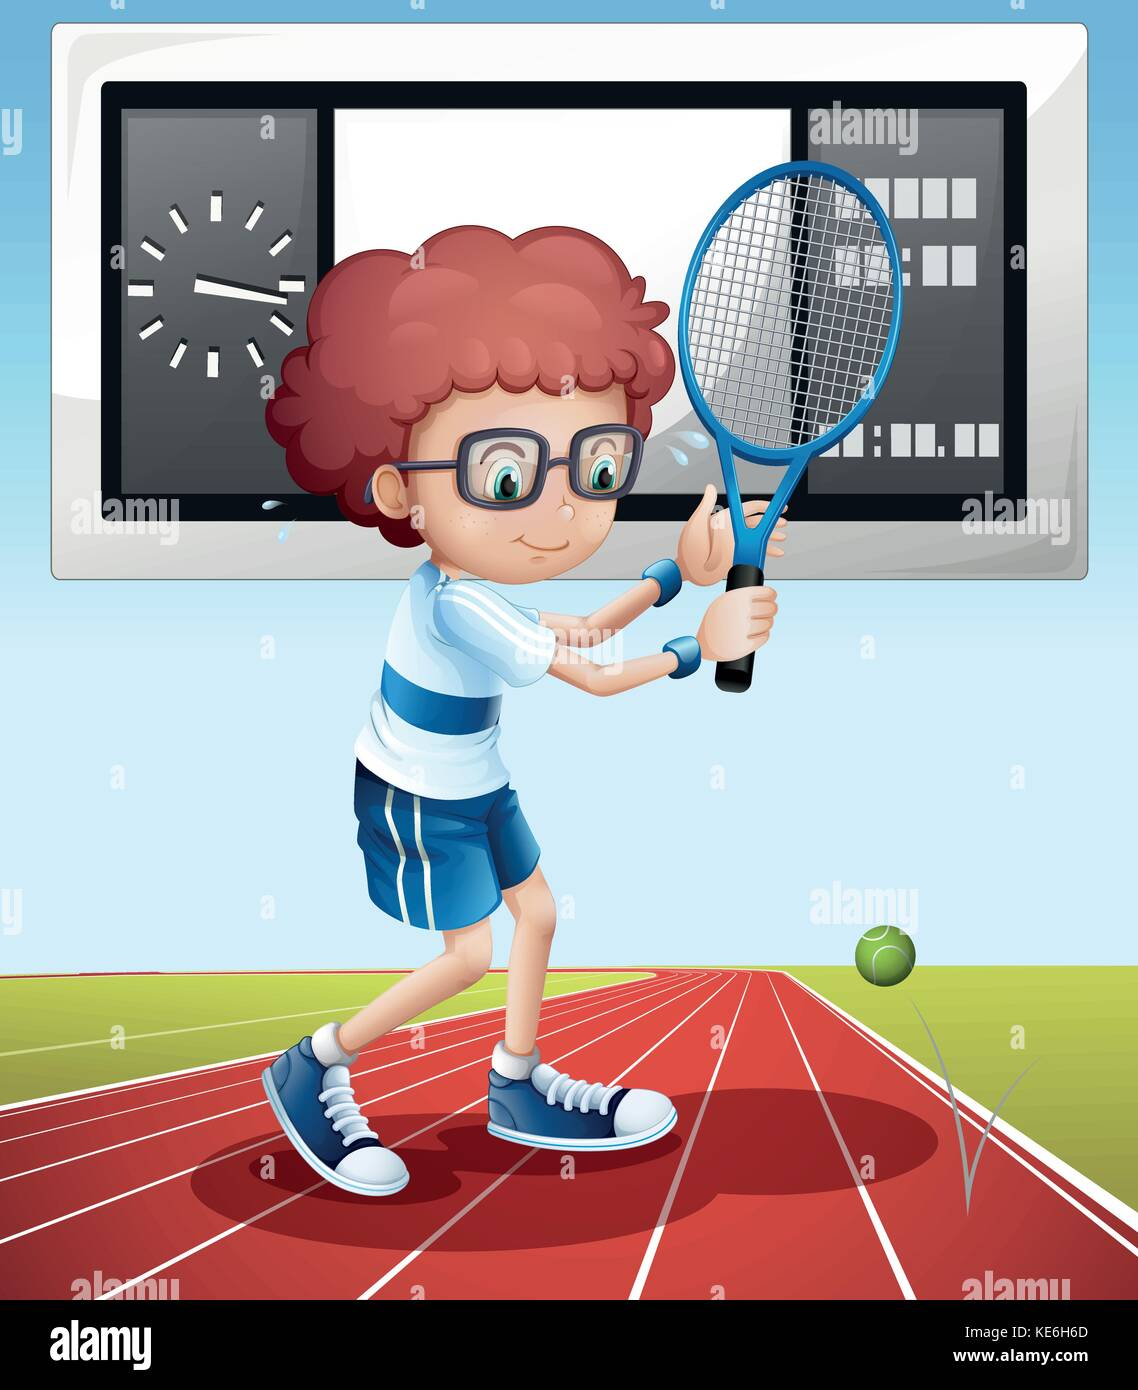 Tennis player in the field illustration Stock Vector